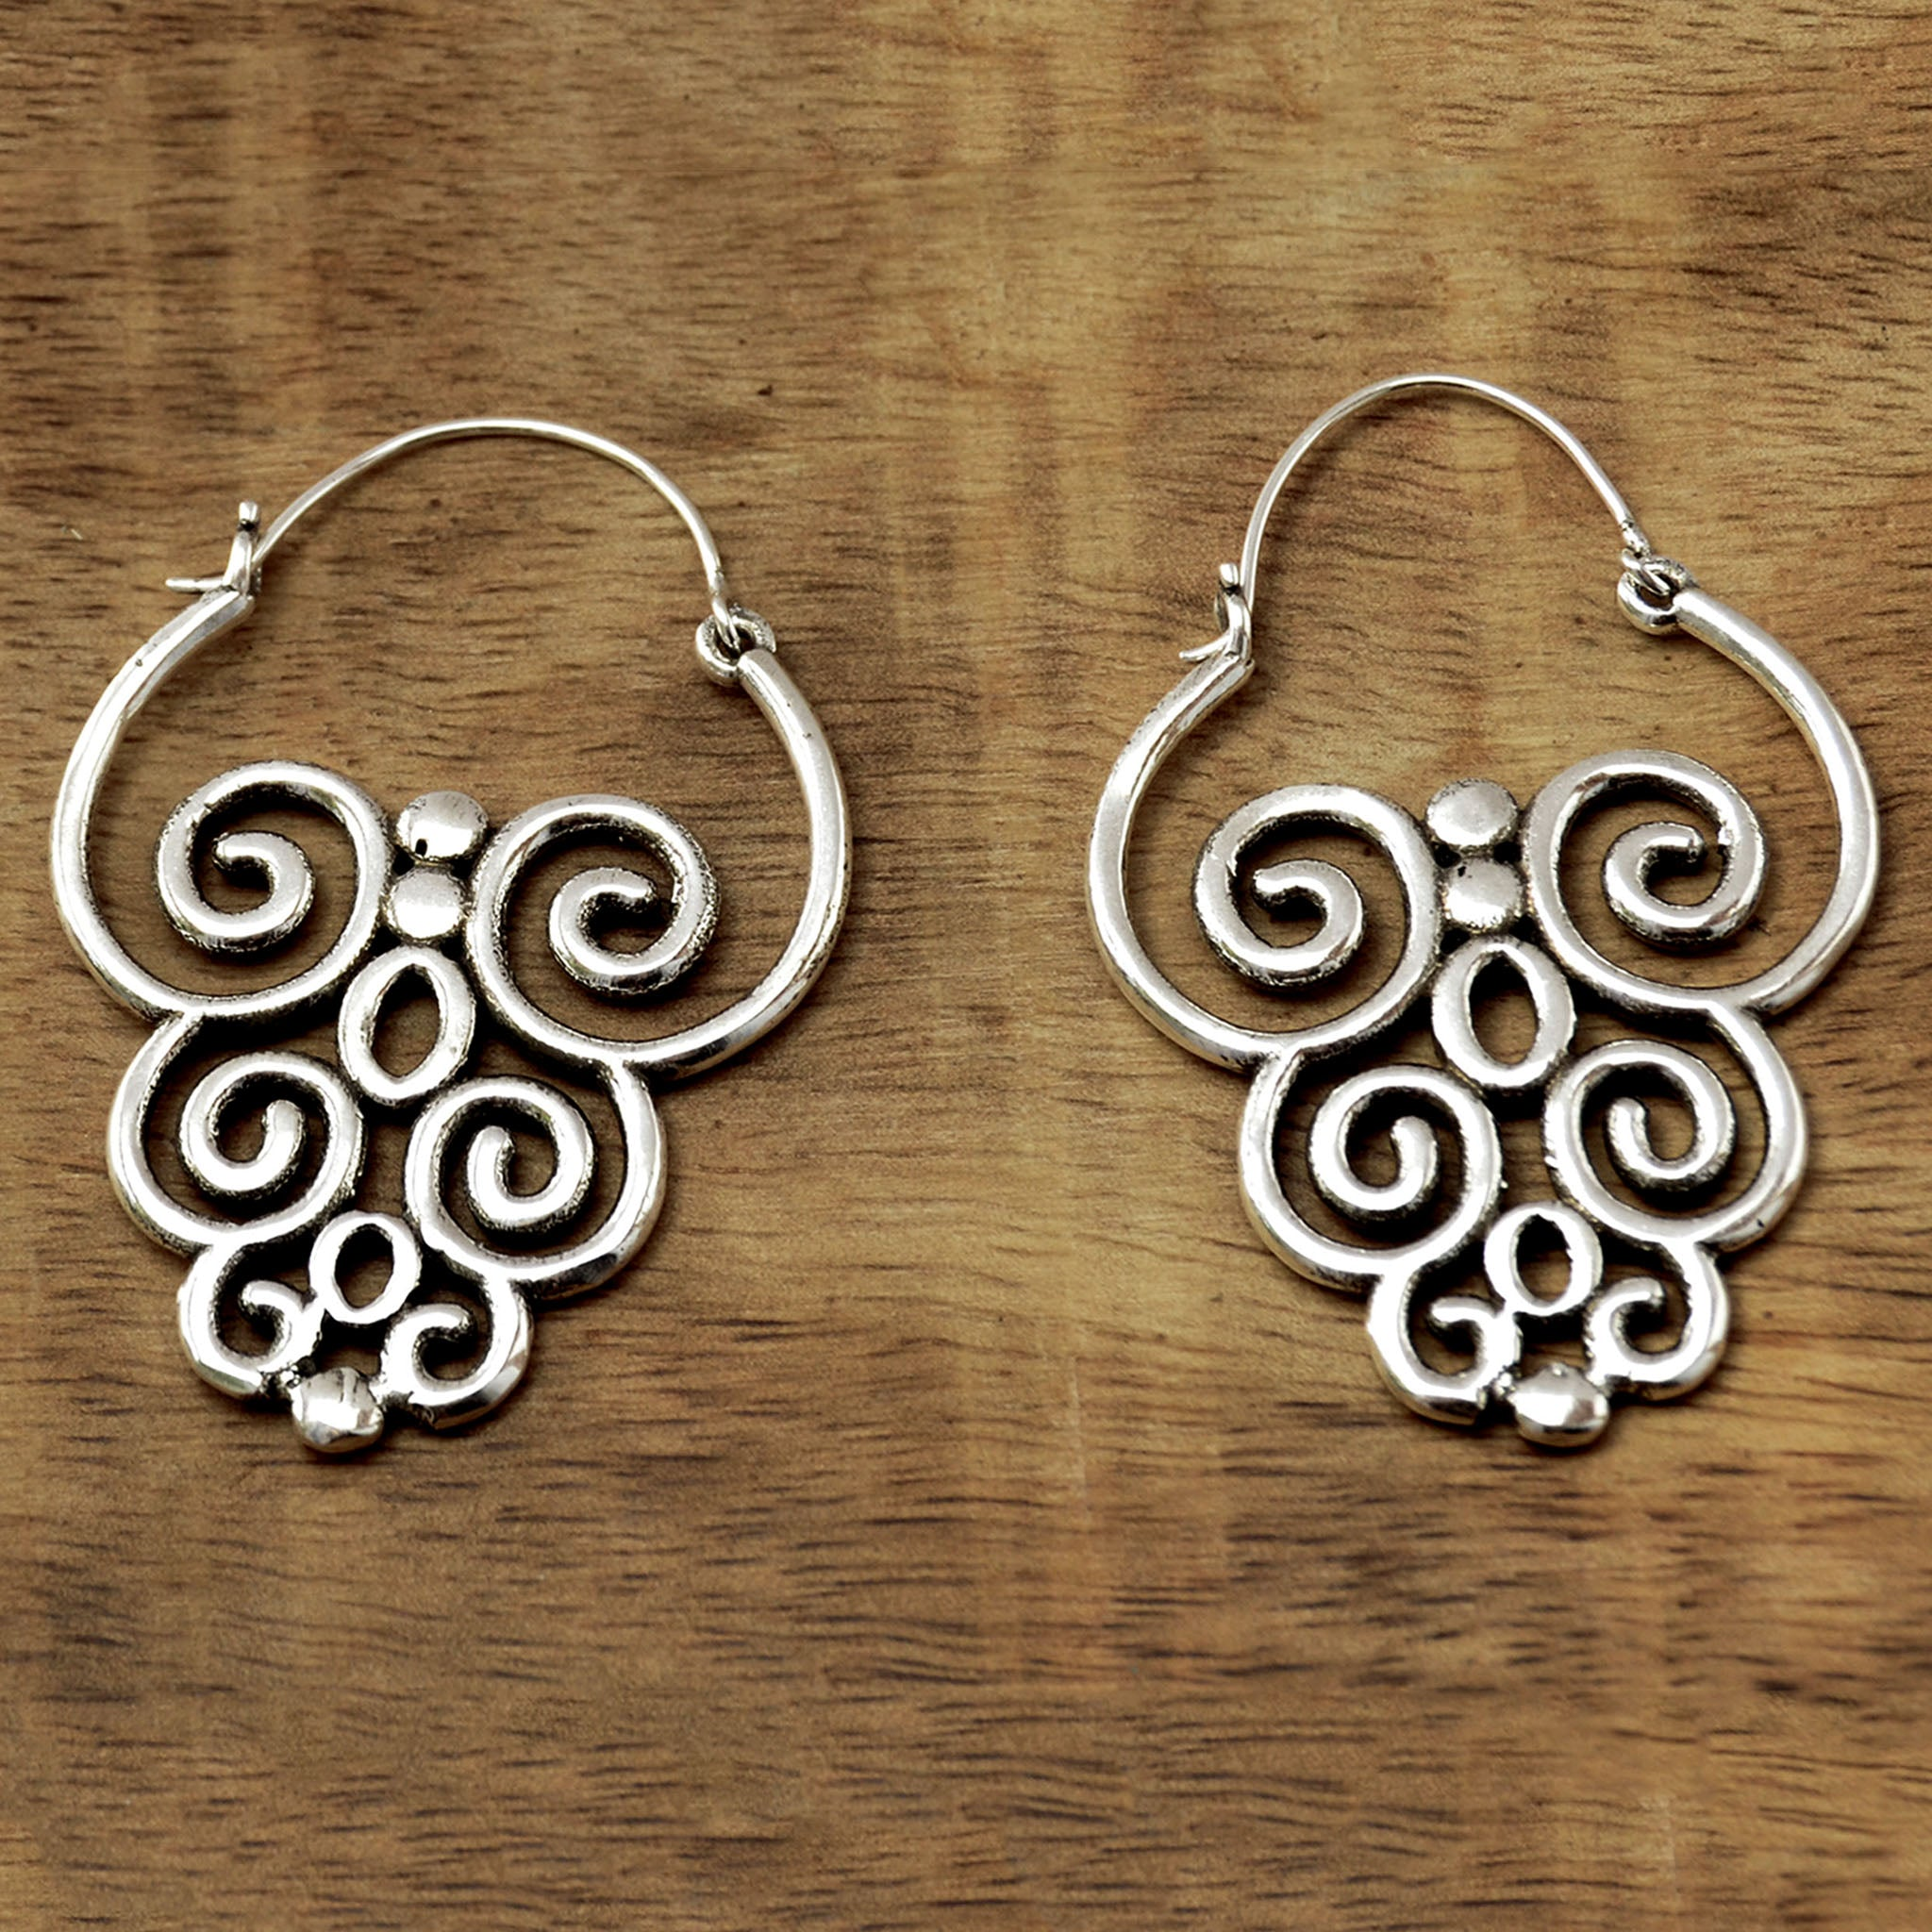 Intrincate earrings